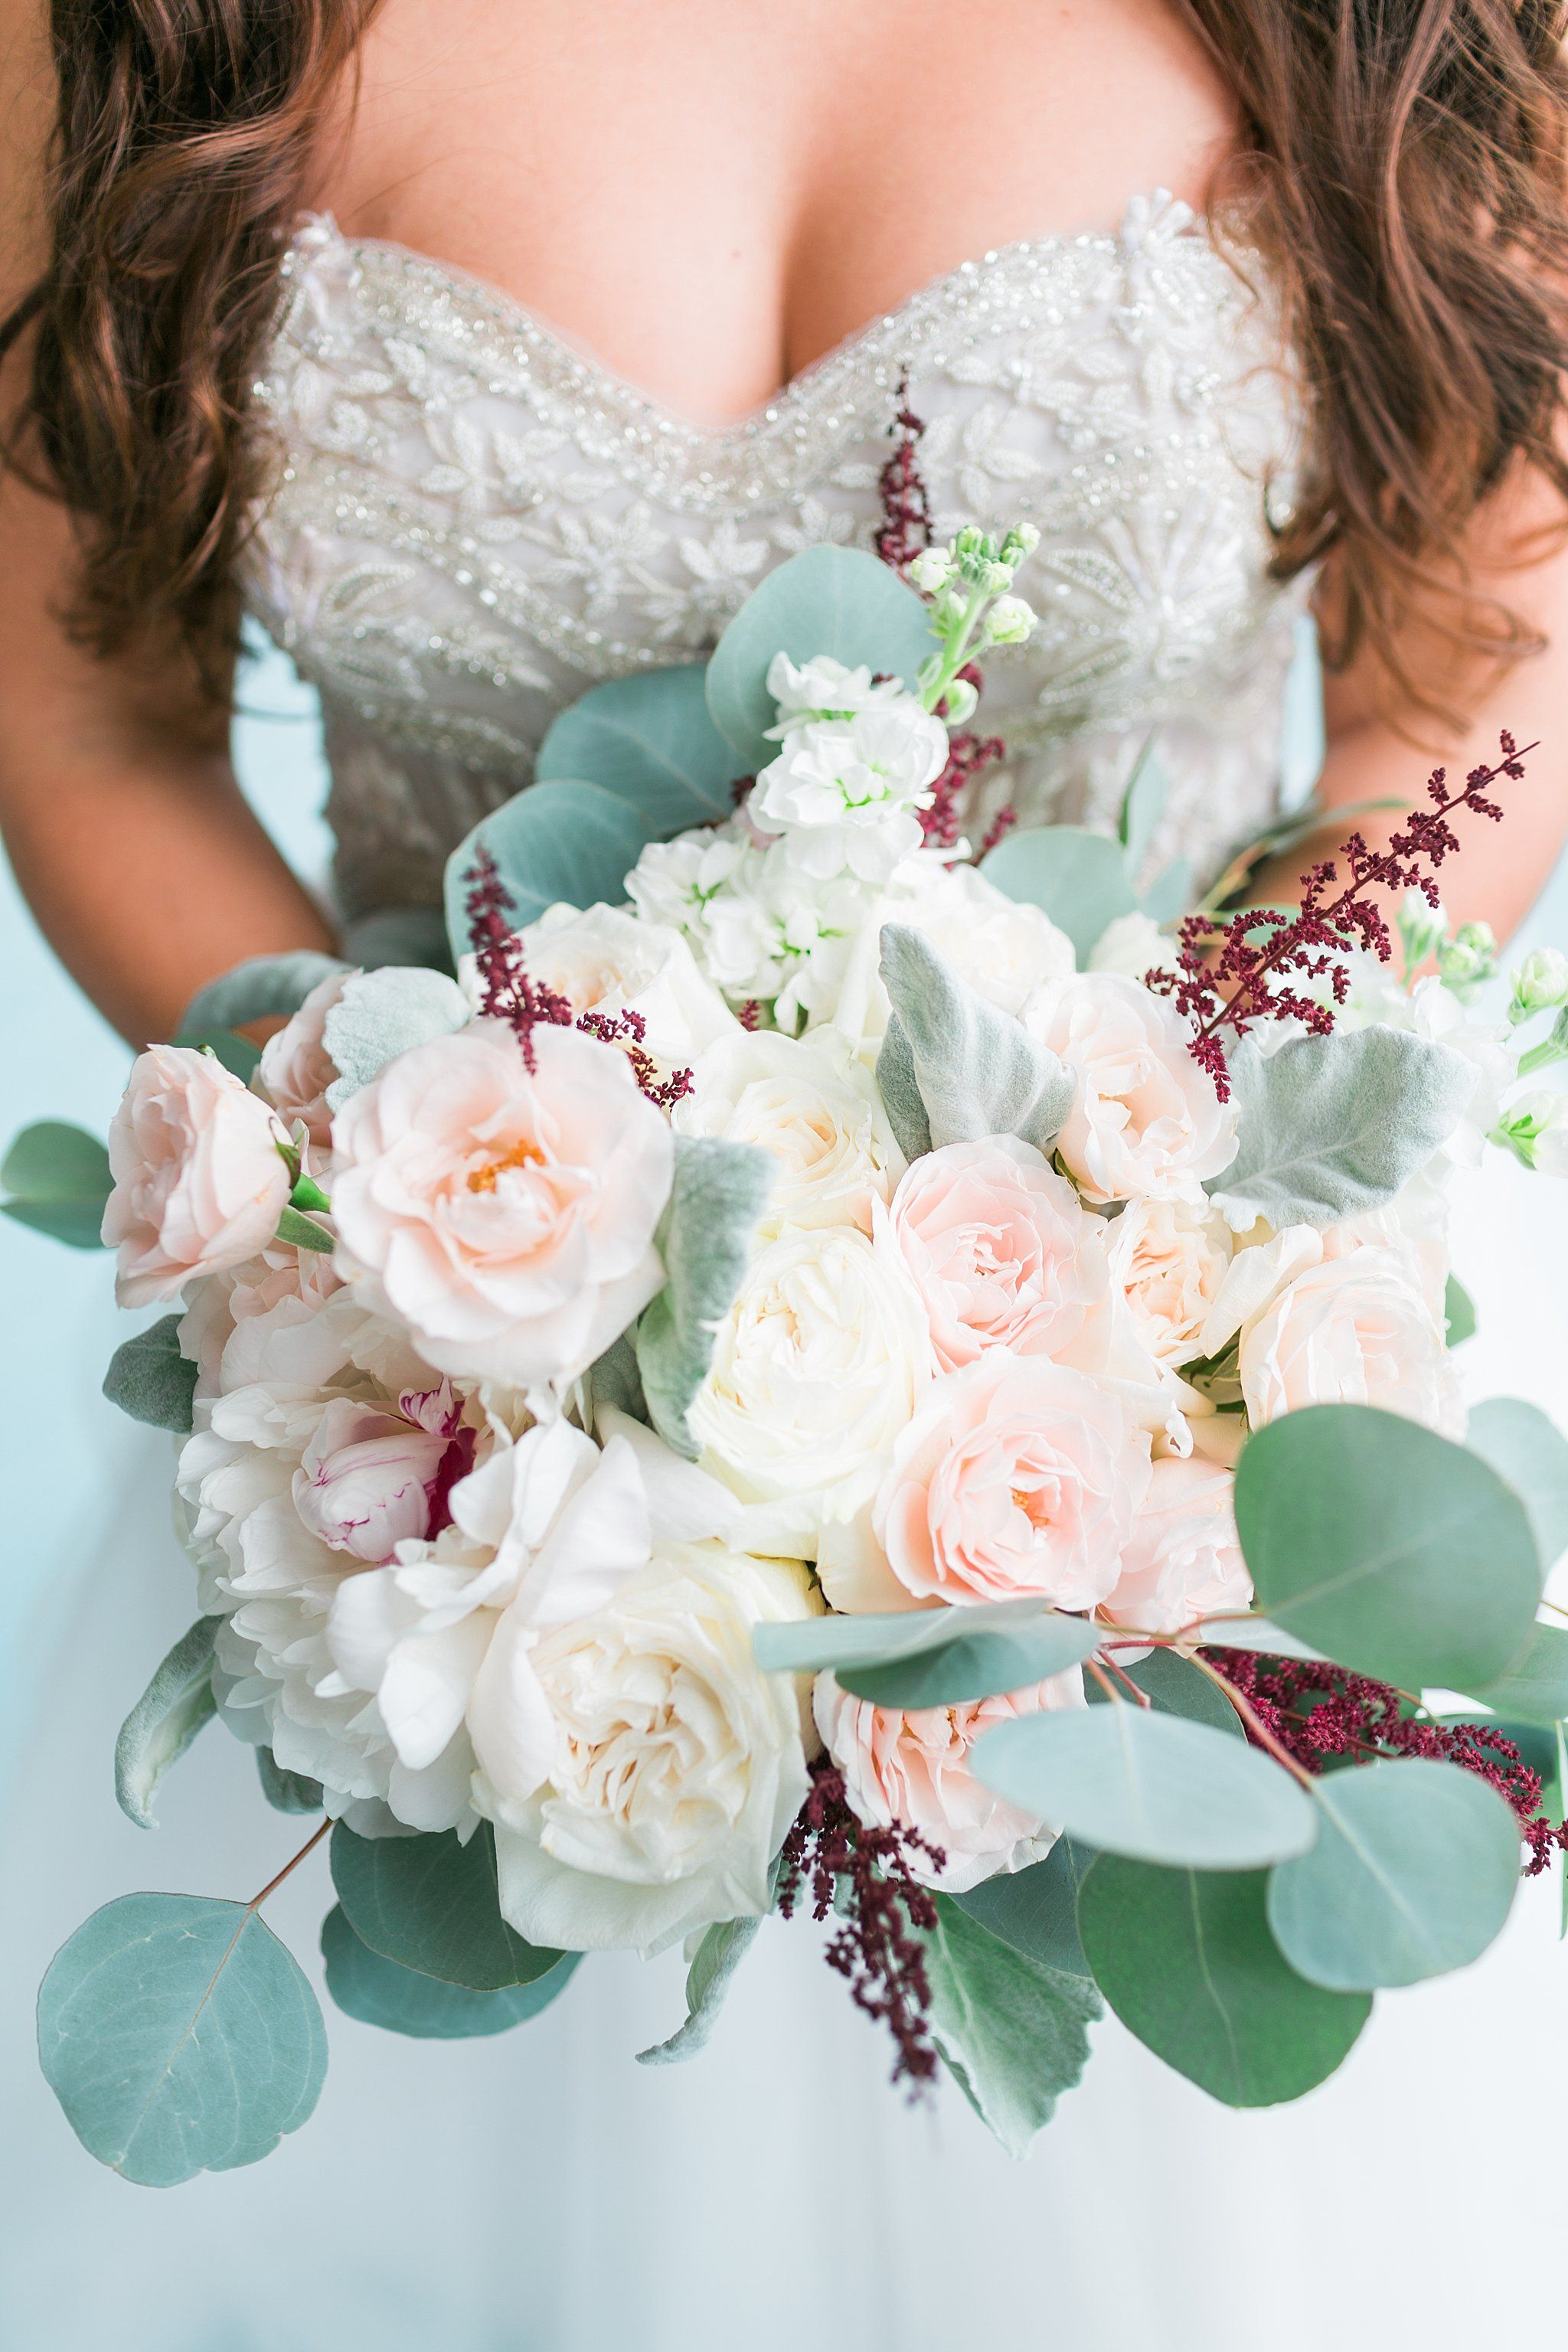 Spring wedding bouquet idea blush greenery bouquet with roses spring wedding bouquet idea blush greenery bouquet with roses peonies and eucalyptus photo by the lees photography mightylinksfo